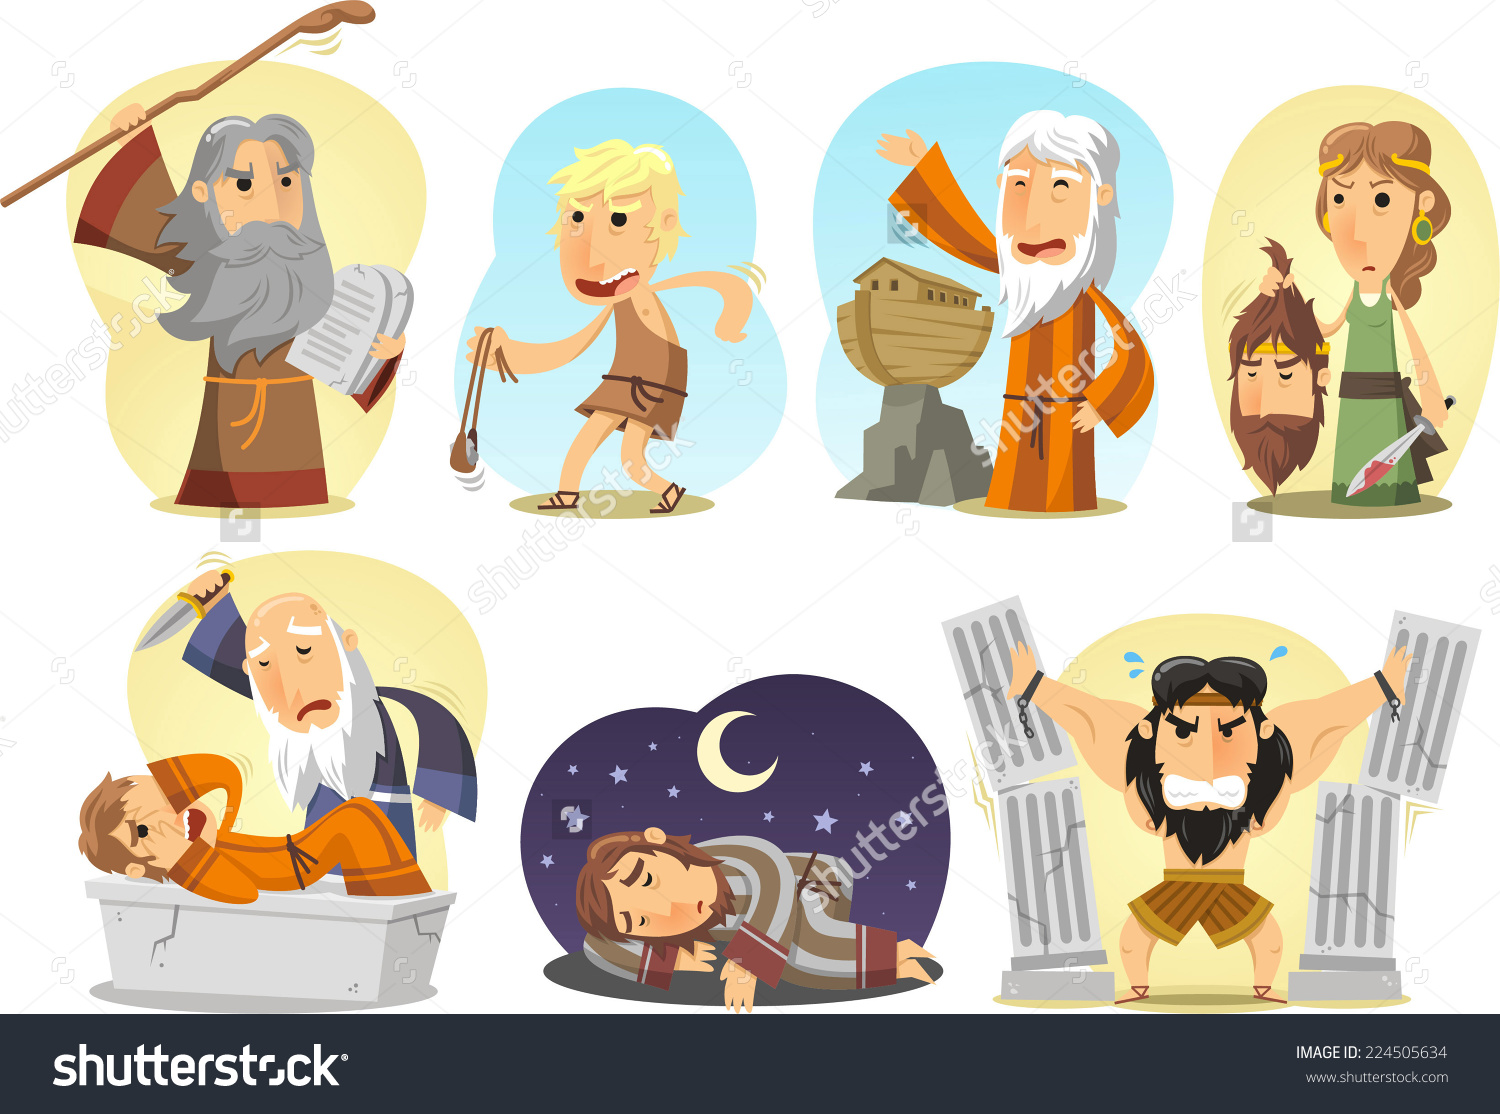 Joseph bible character clipart svg free download Old Testament Torah Jewish Bible Main Stock Vector 224505634 ... svg free download